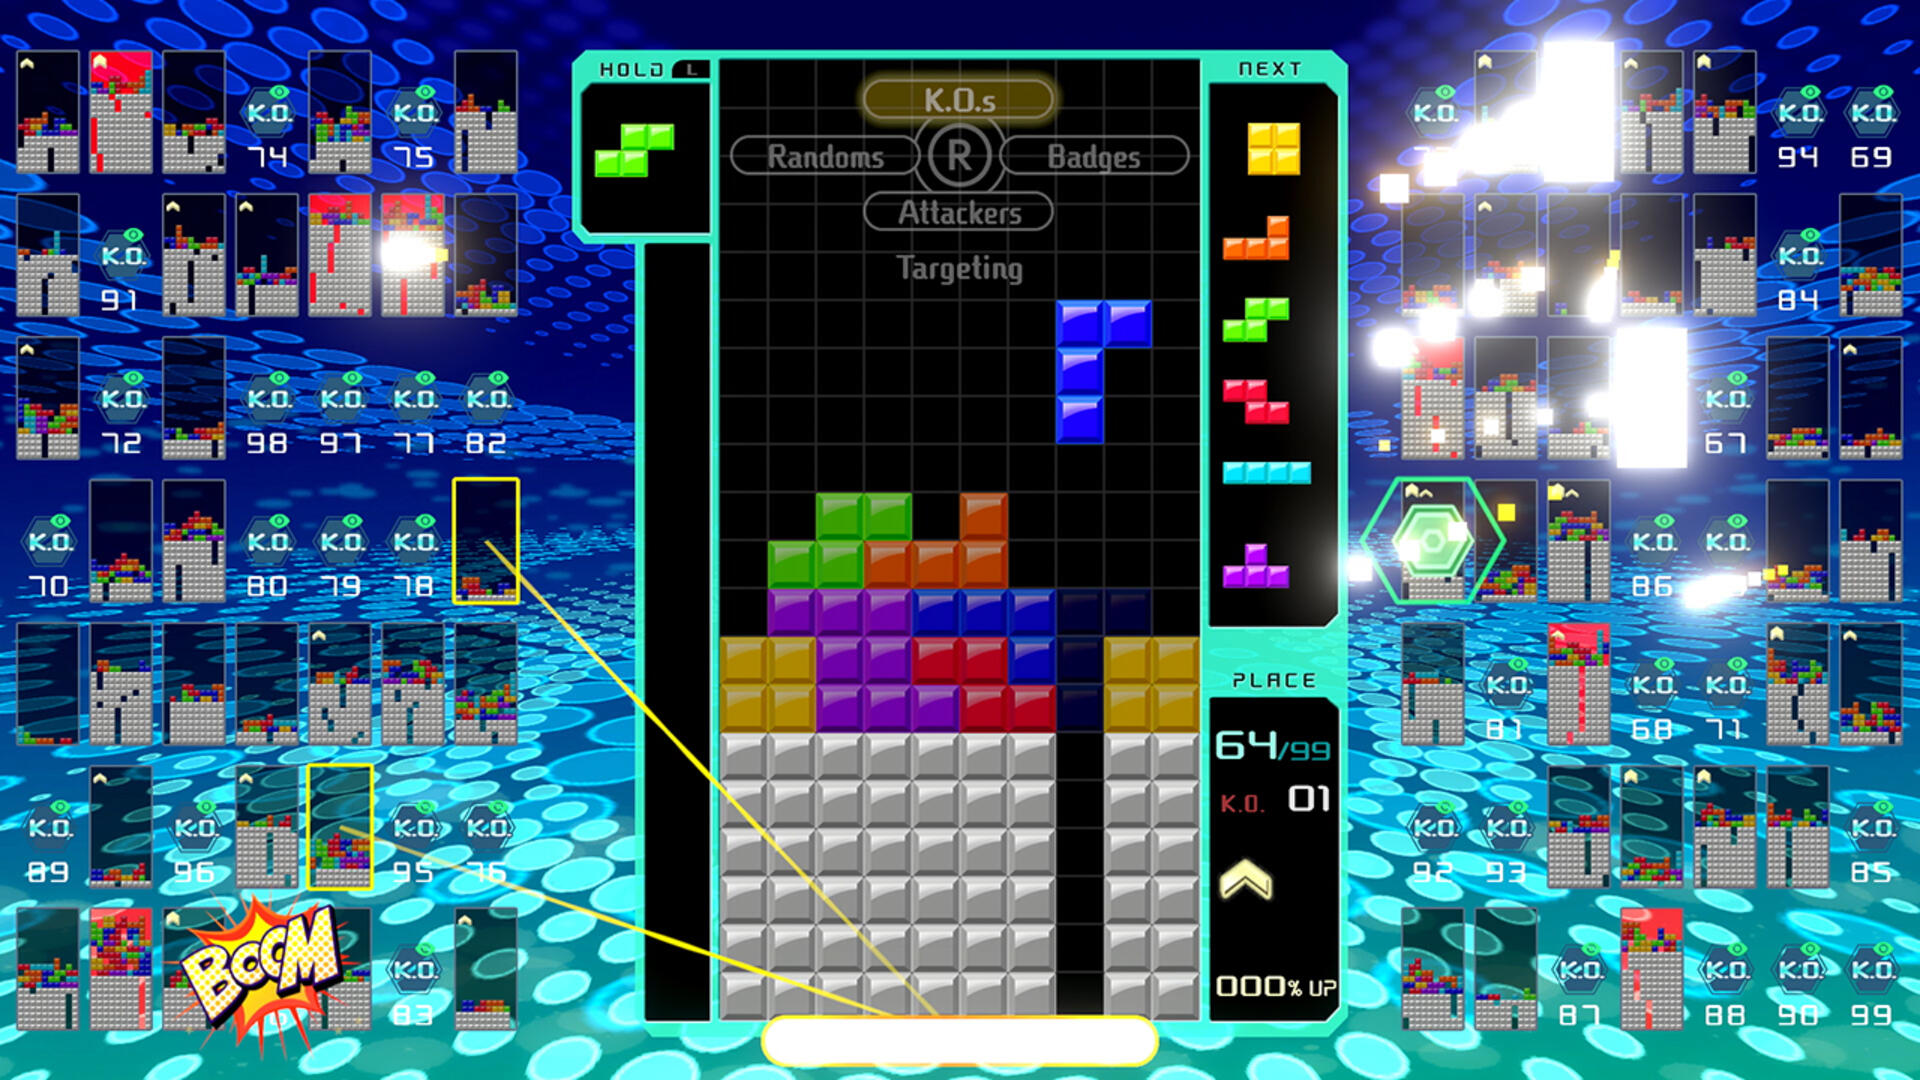 Insane Tetris 99 Highlights From Players Better Than You'll Ever Be